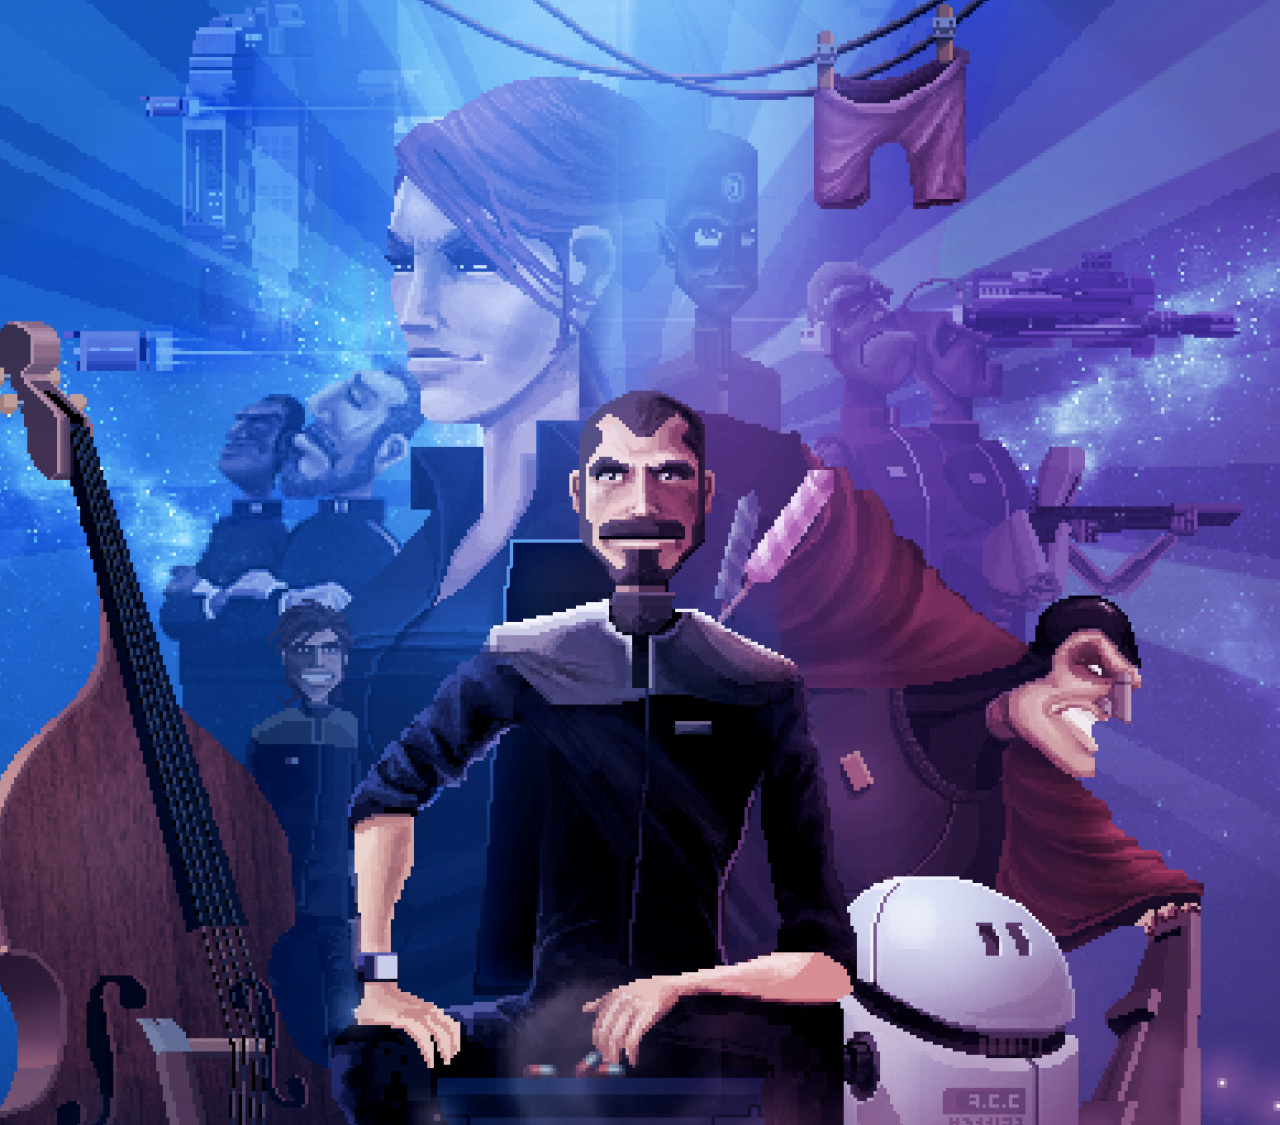 Feature: Tomorrow Corporation Turns Publisher With Star Trek-Style